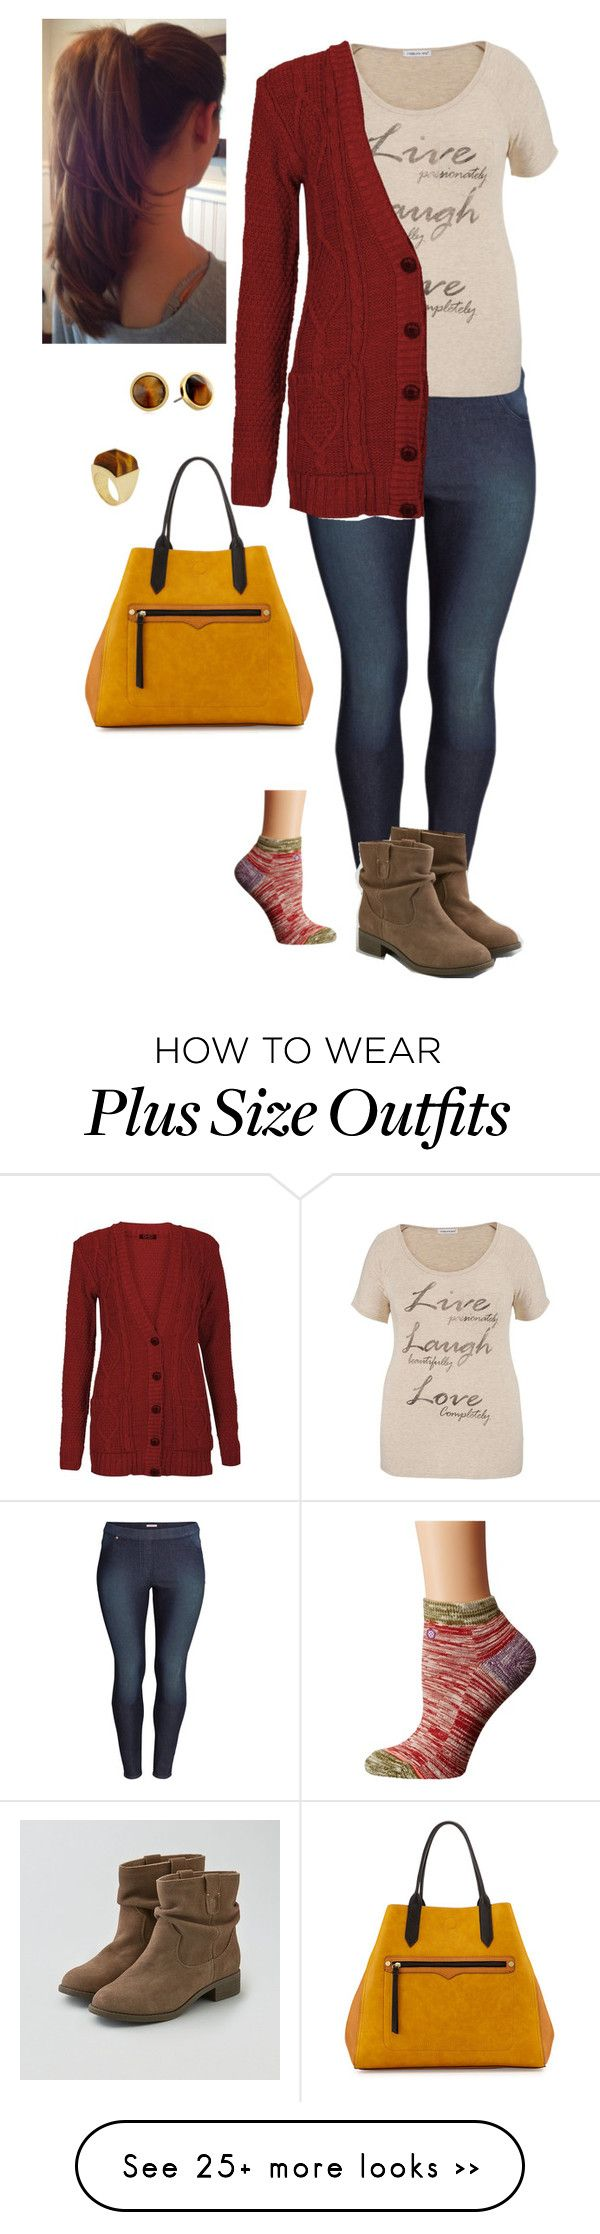 """Long Cardigan & Treggings plus size"" by jacobjarettsmom on Polyvore featuring H&M, maurices, American Eagle Outfitters, Stance, Neiman Marcus, Trina Turk LA, BCBGMAXAZRIA and plussize"